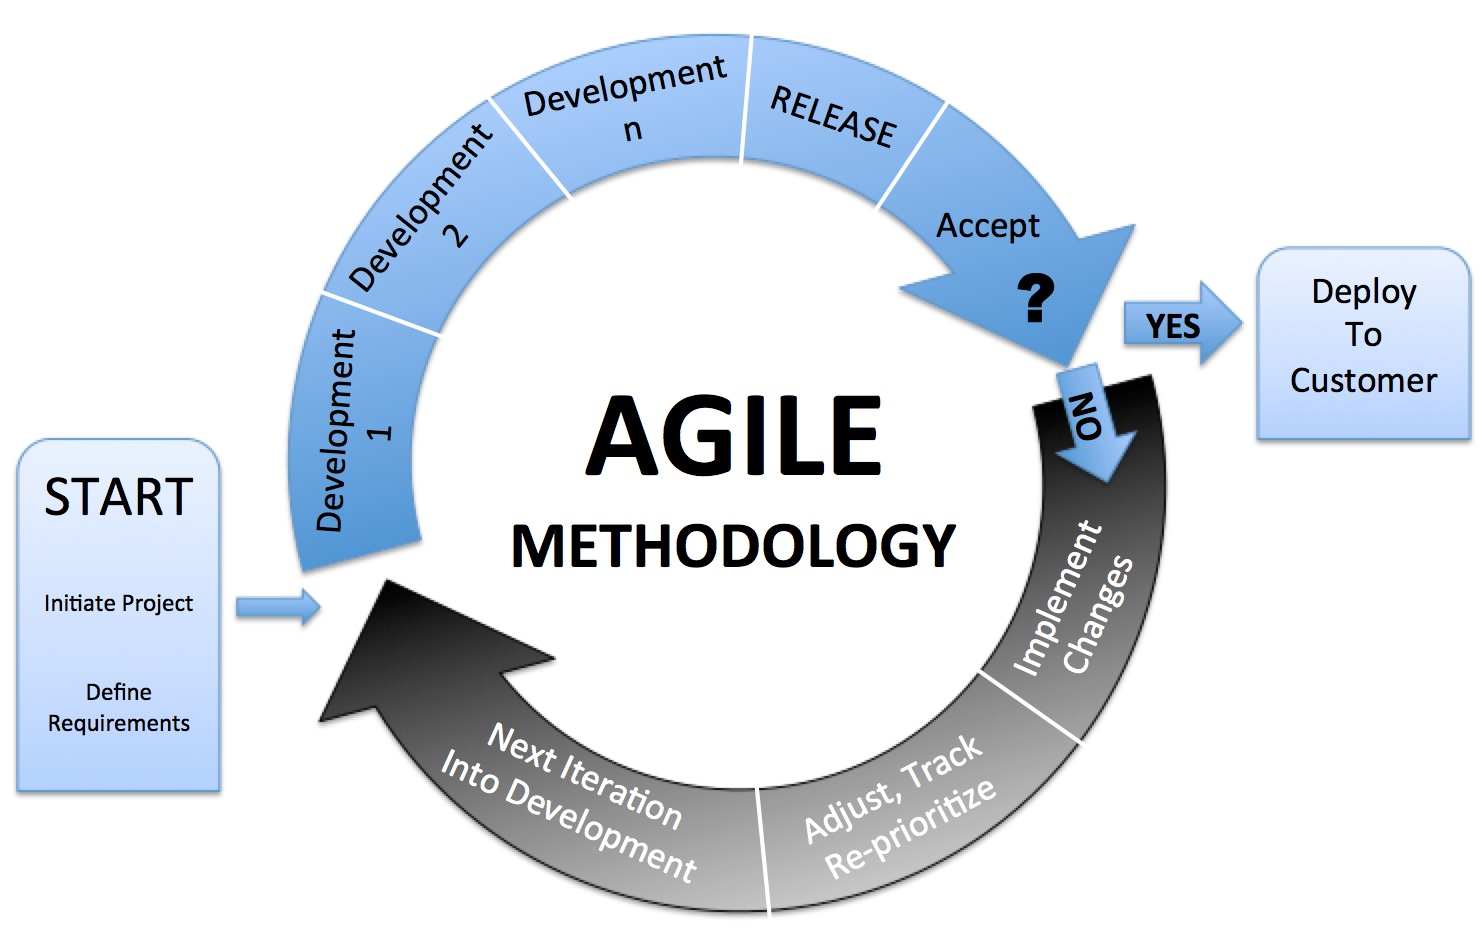 Scrum Agile Methodology: When and Why Should You Choose It?